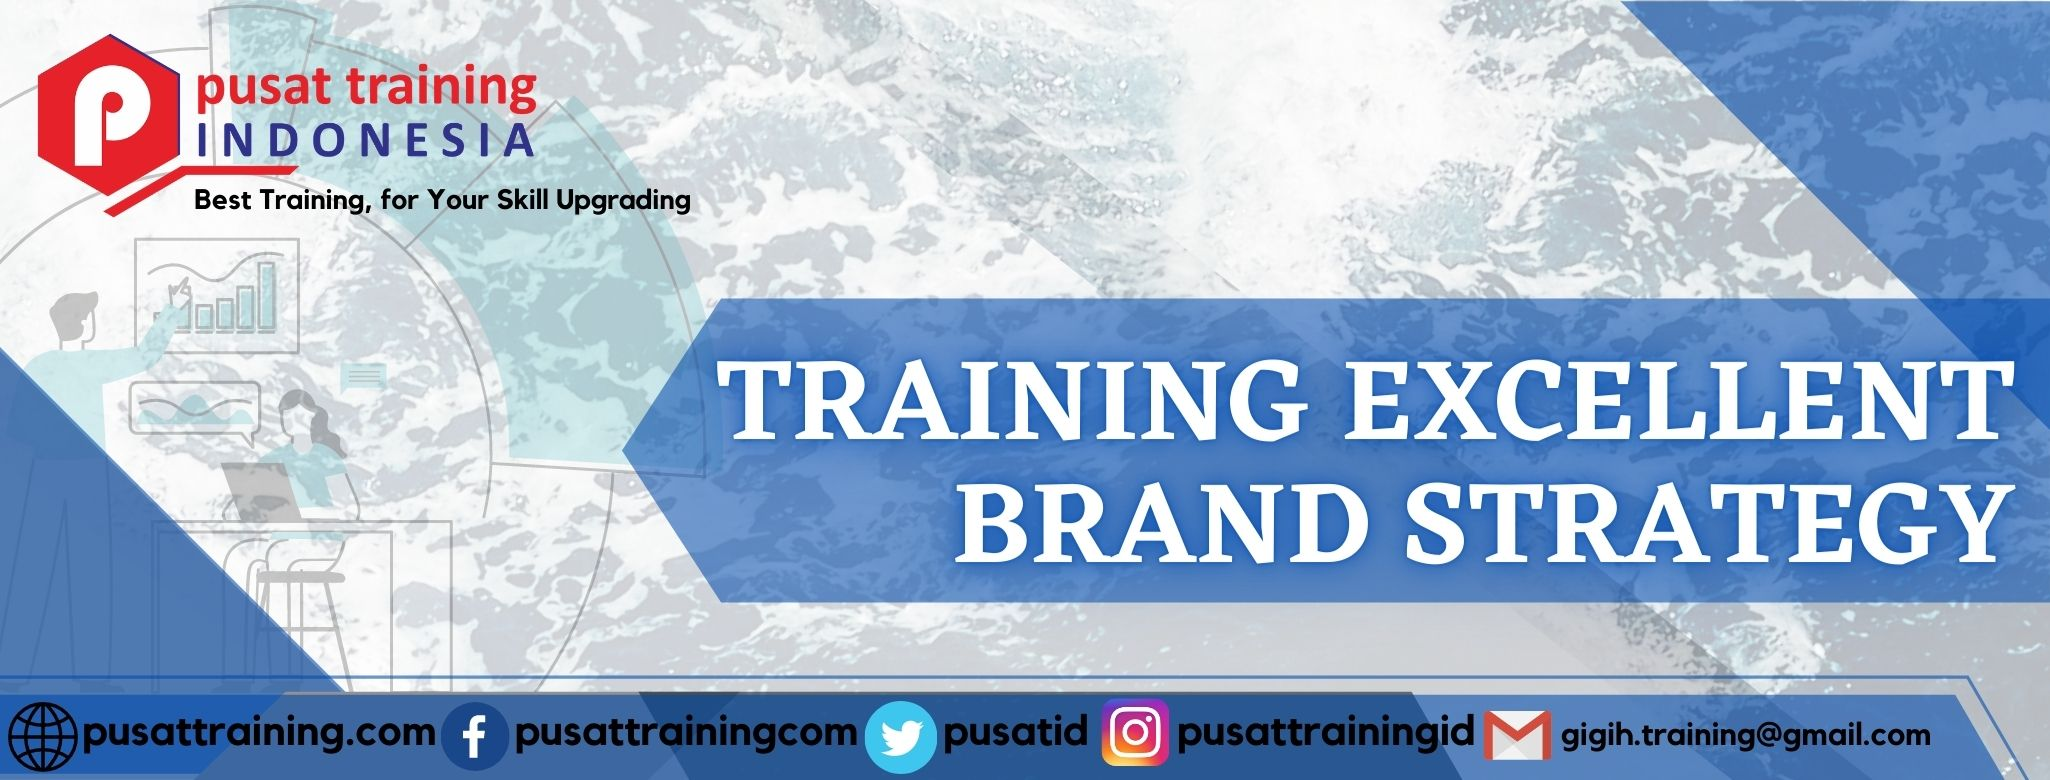 training-excellent-brand-strategy